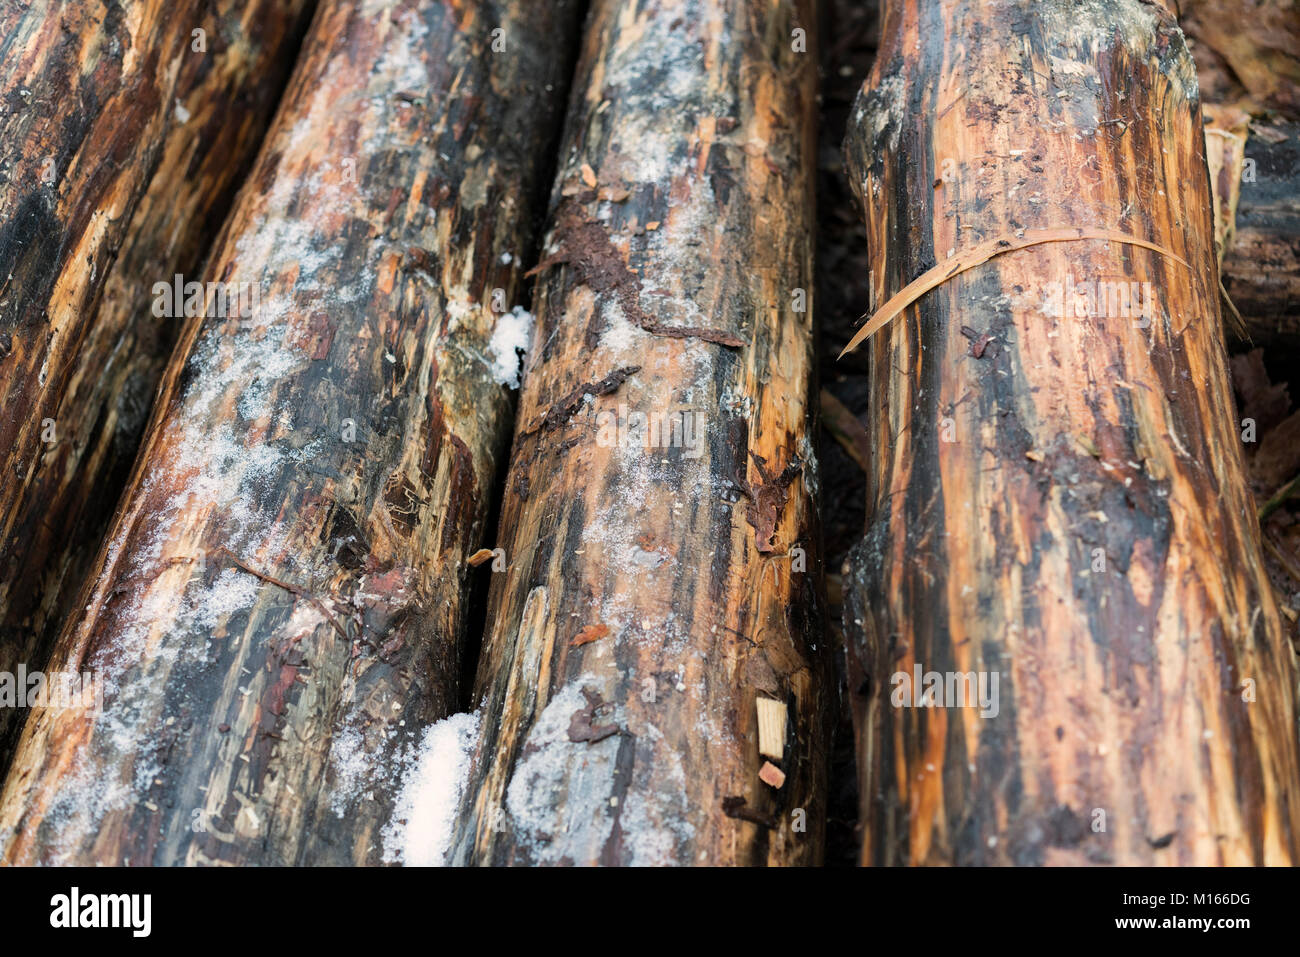 logs of logs with bark removed. Close-up - Stock Image